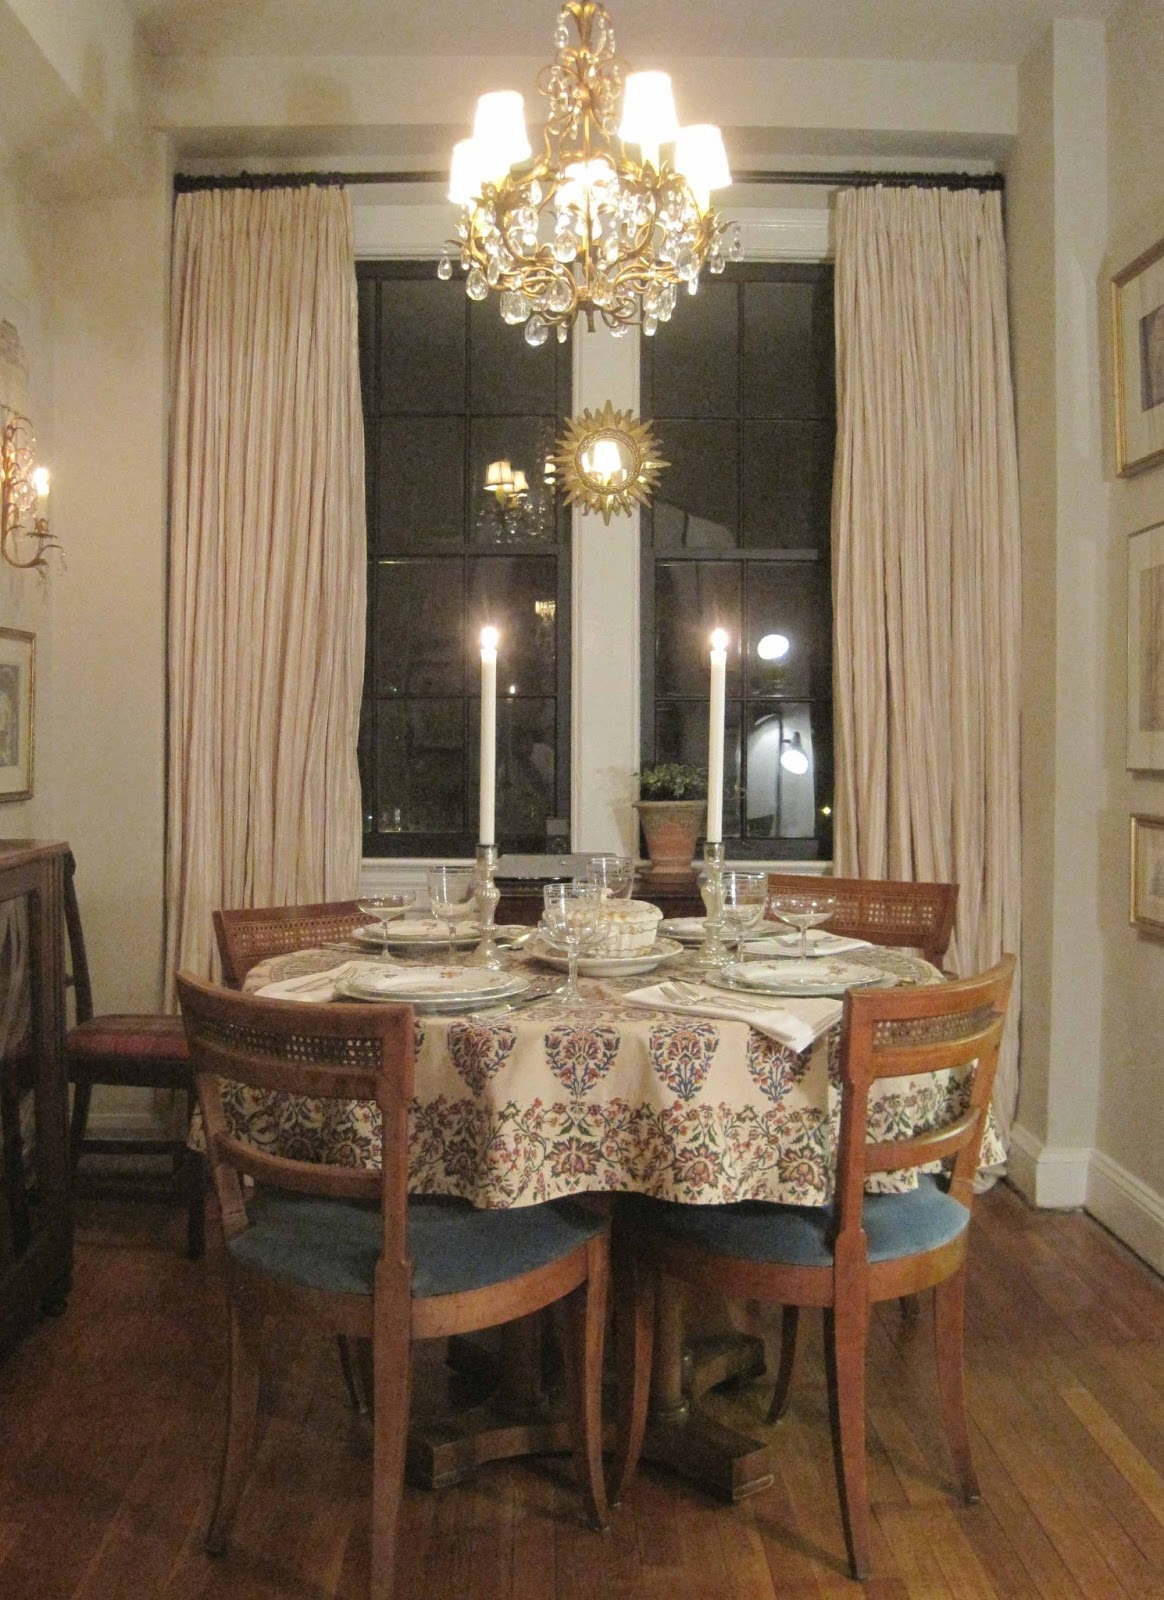 Before I Moved In The Dining Room Had An Ugly Chandelier And Wood